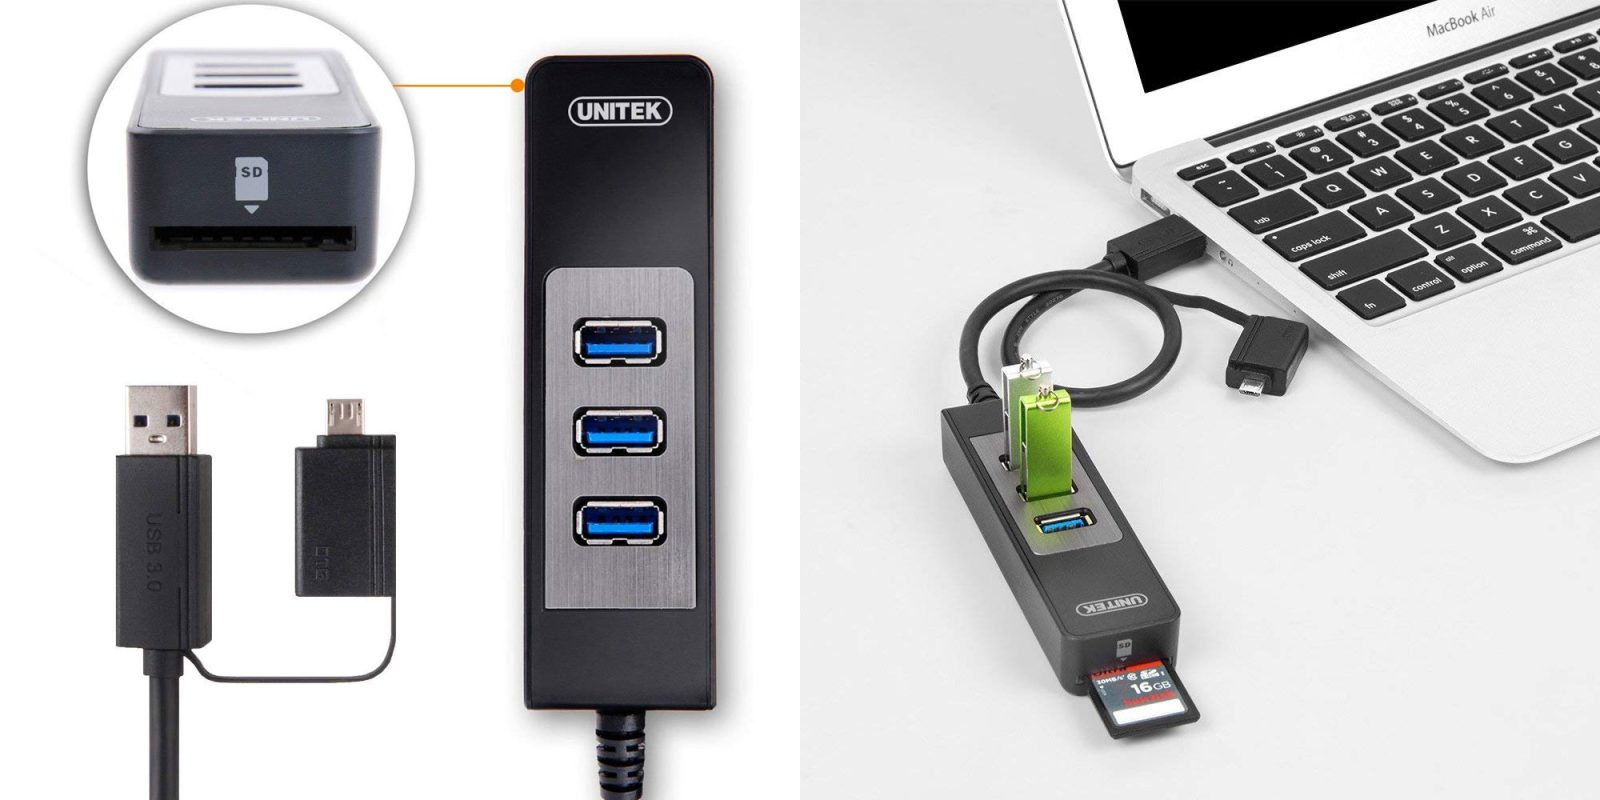 Add three USB 3.0 ports + SD Card support to any computer w/ this hub at $4 Prime shipped